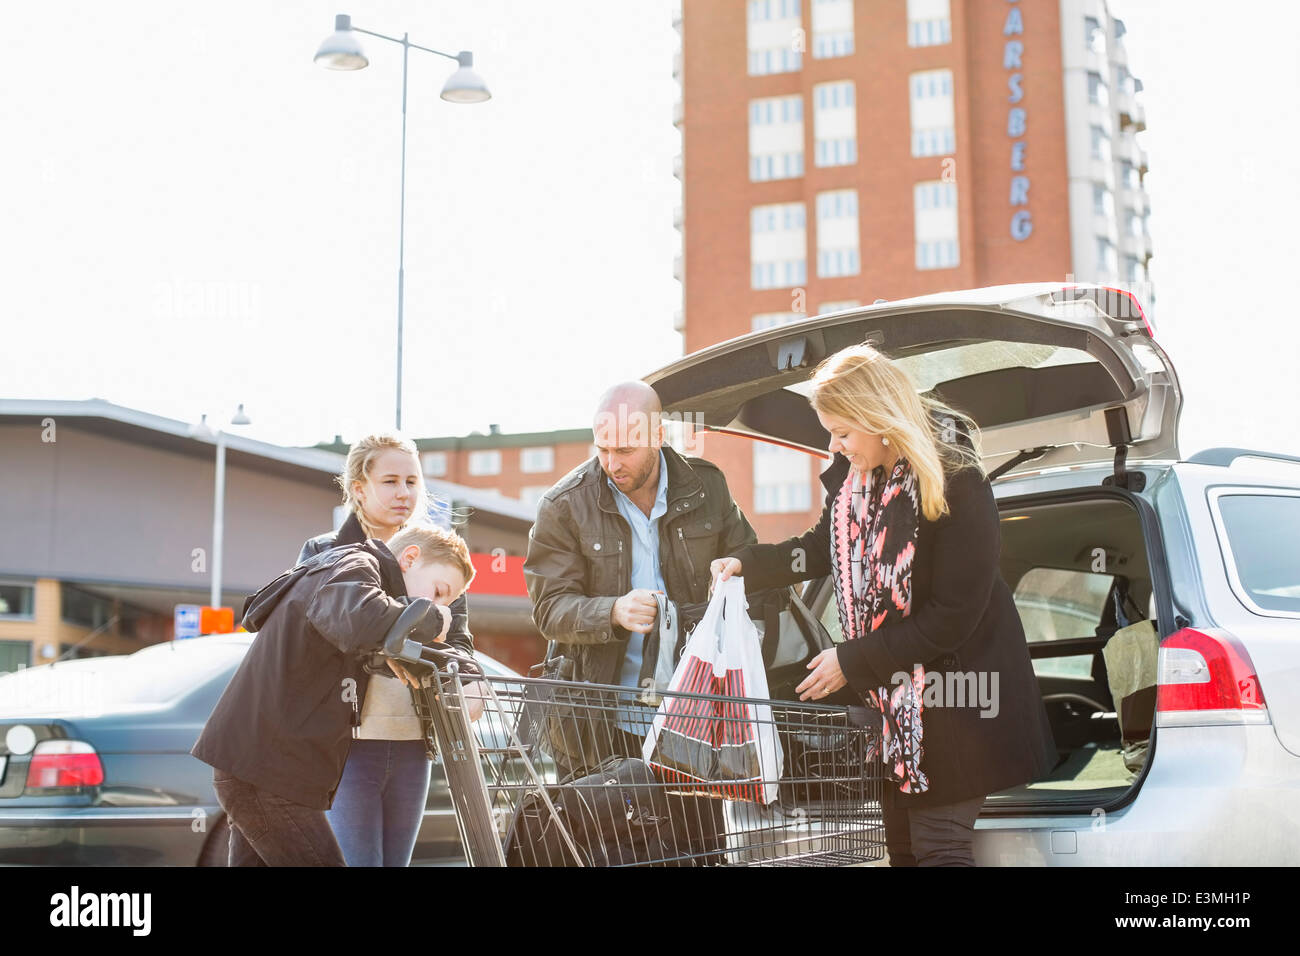 Family loading groceries in car trunk at parking lot - Stock Image